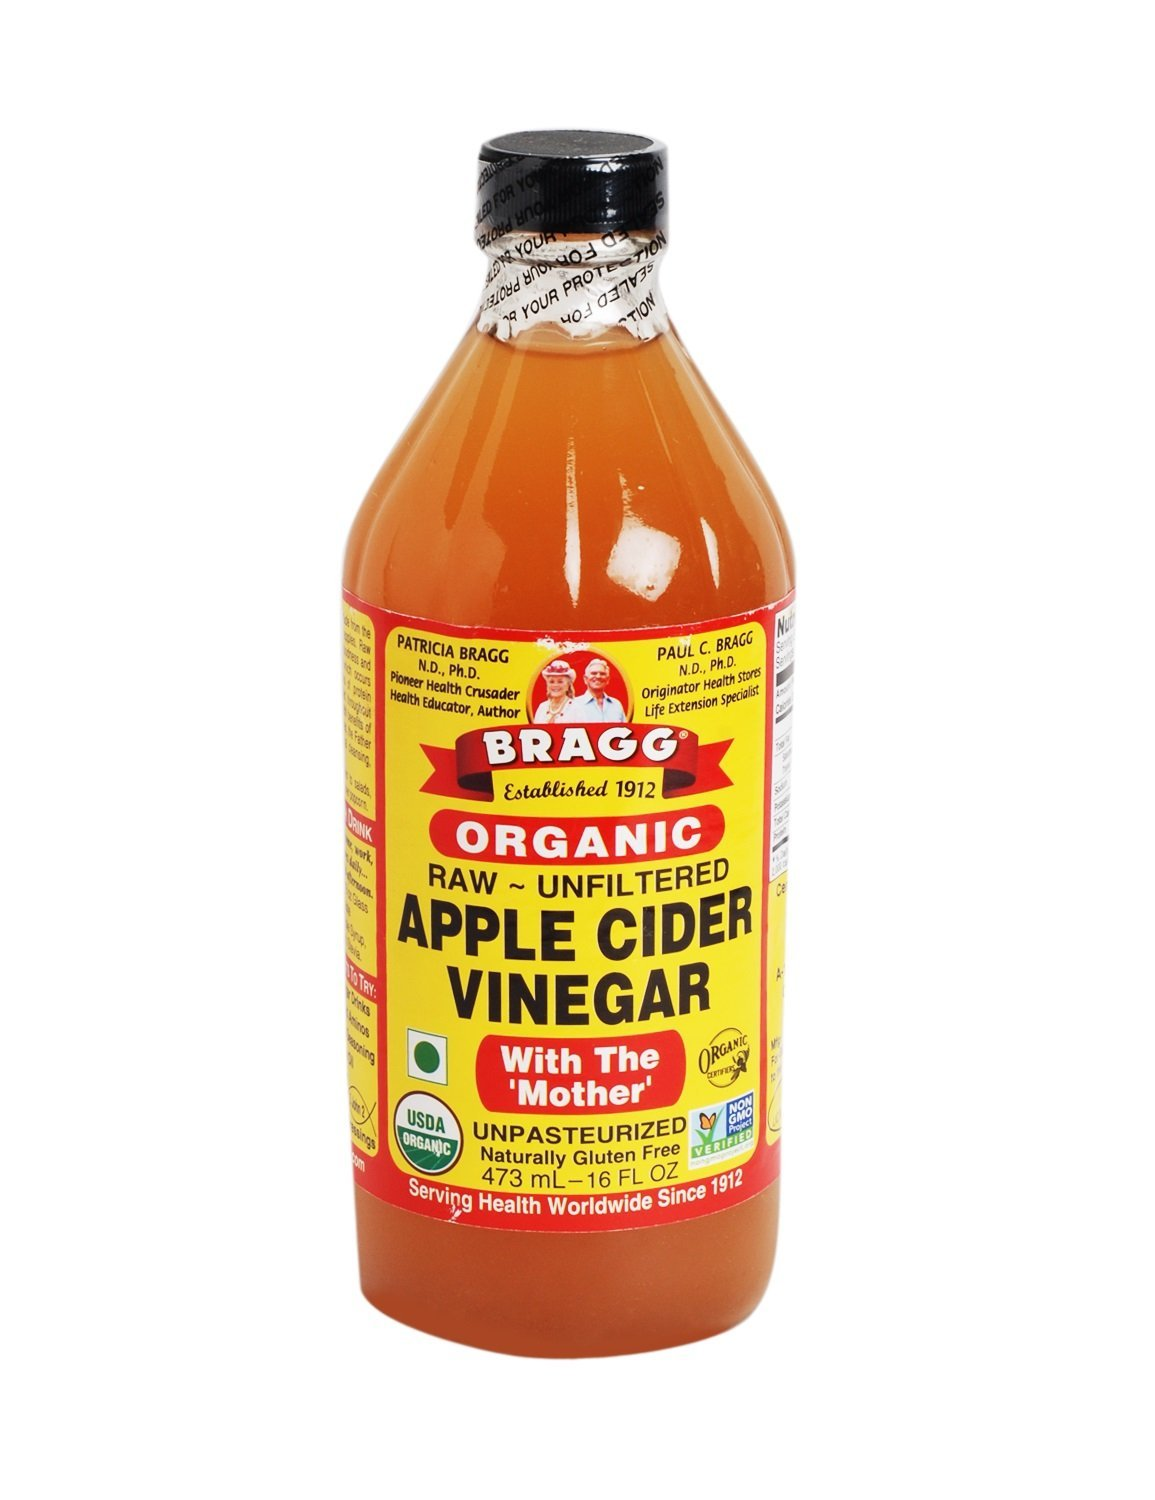 Why I don't Recommend Apple Cider Vinegar for Eczema